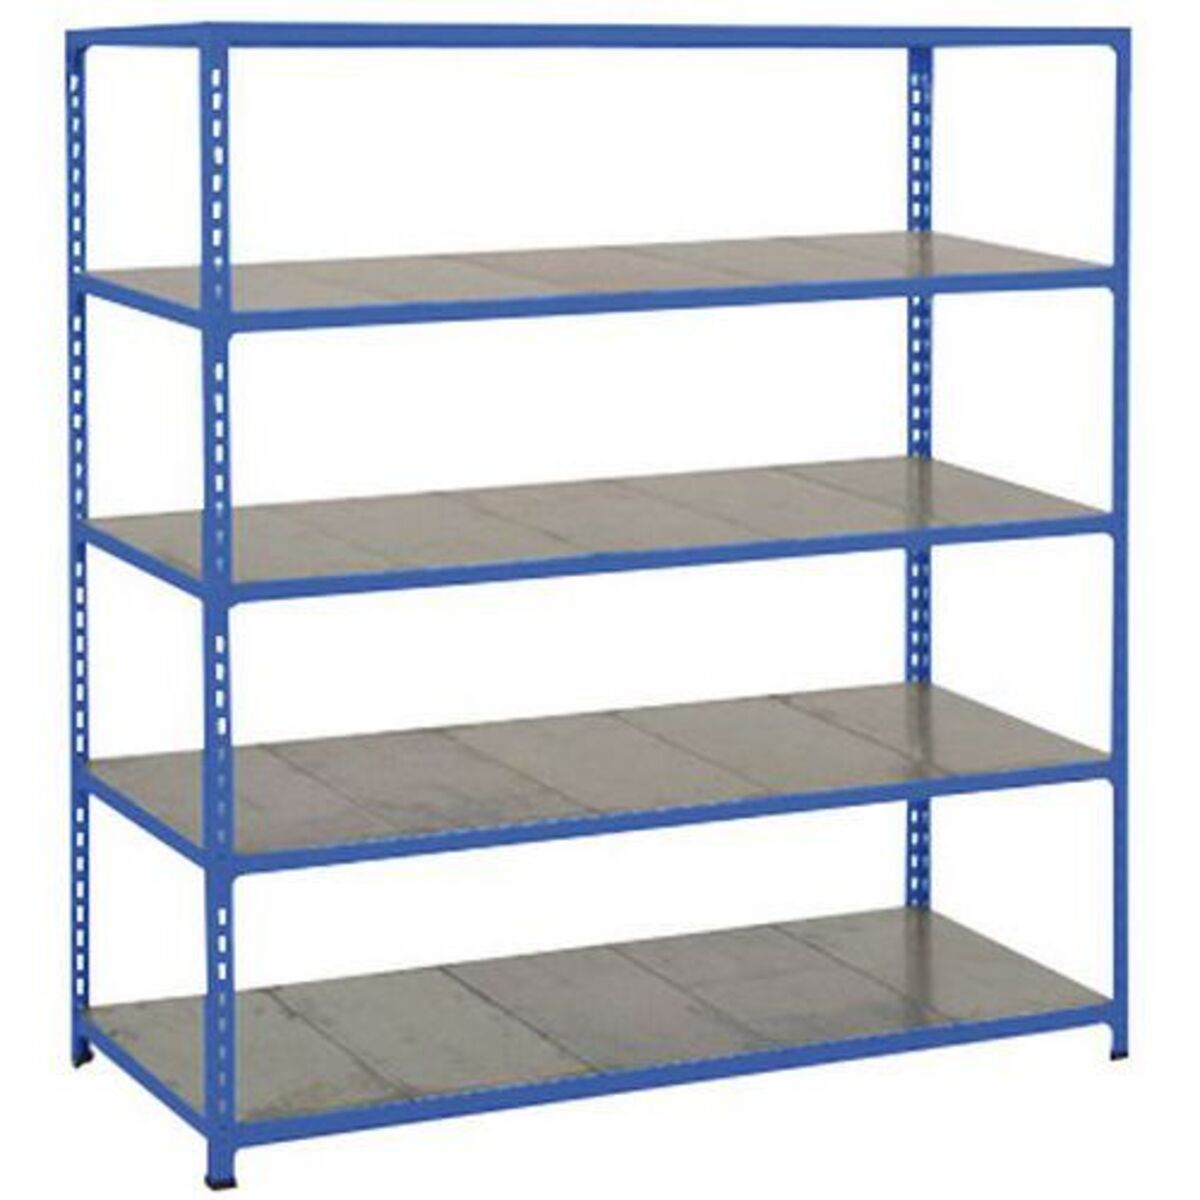 Rayonnage Rapid 2 1980x1525x610 5 tablettes metal bleu époxy